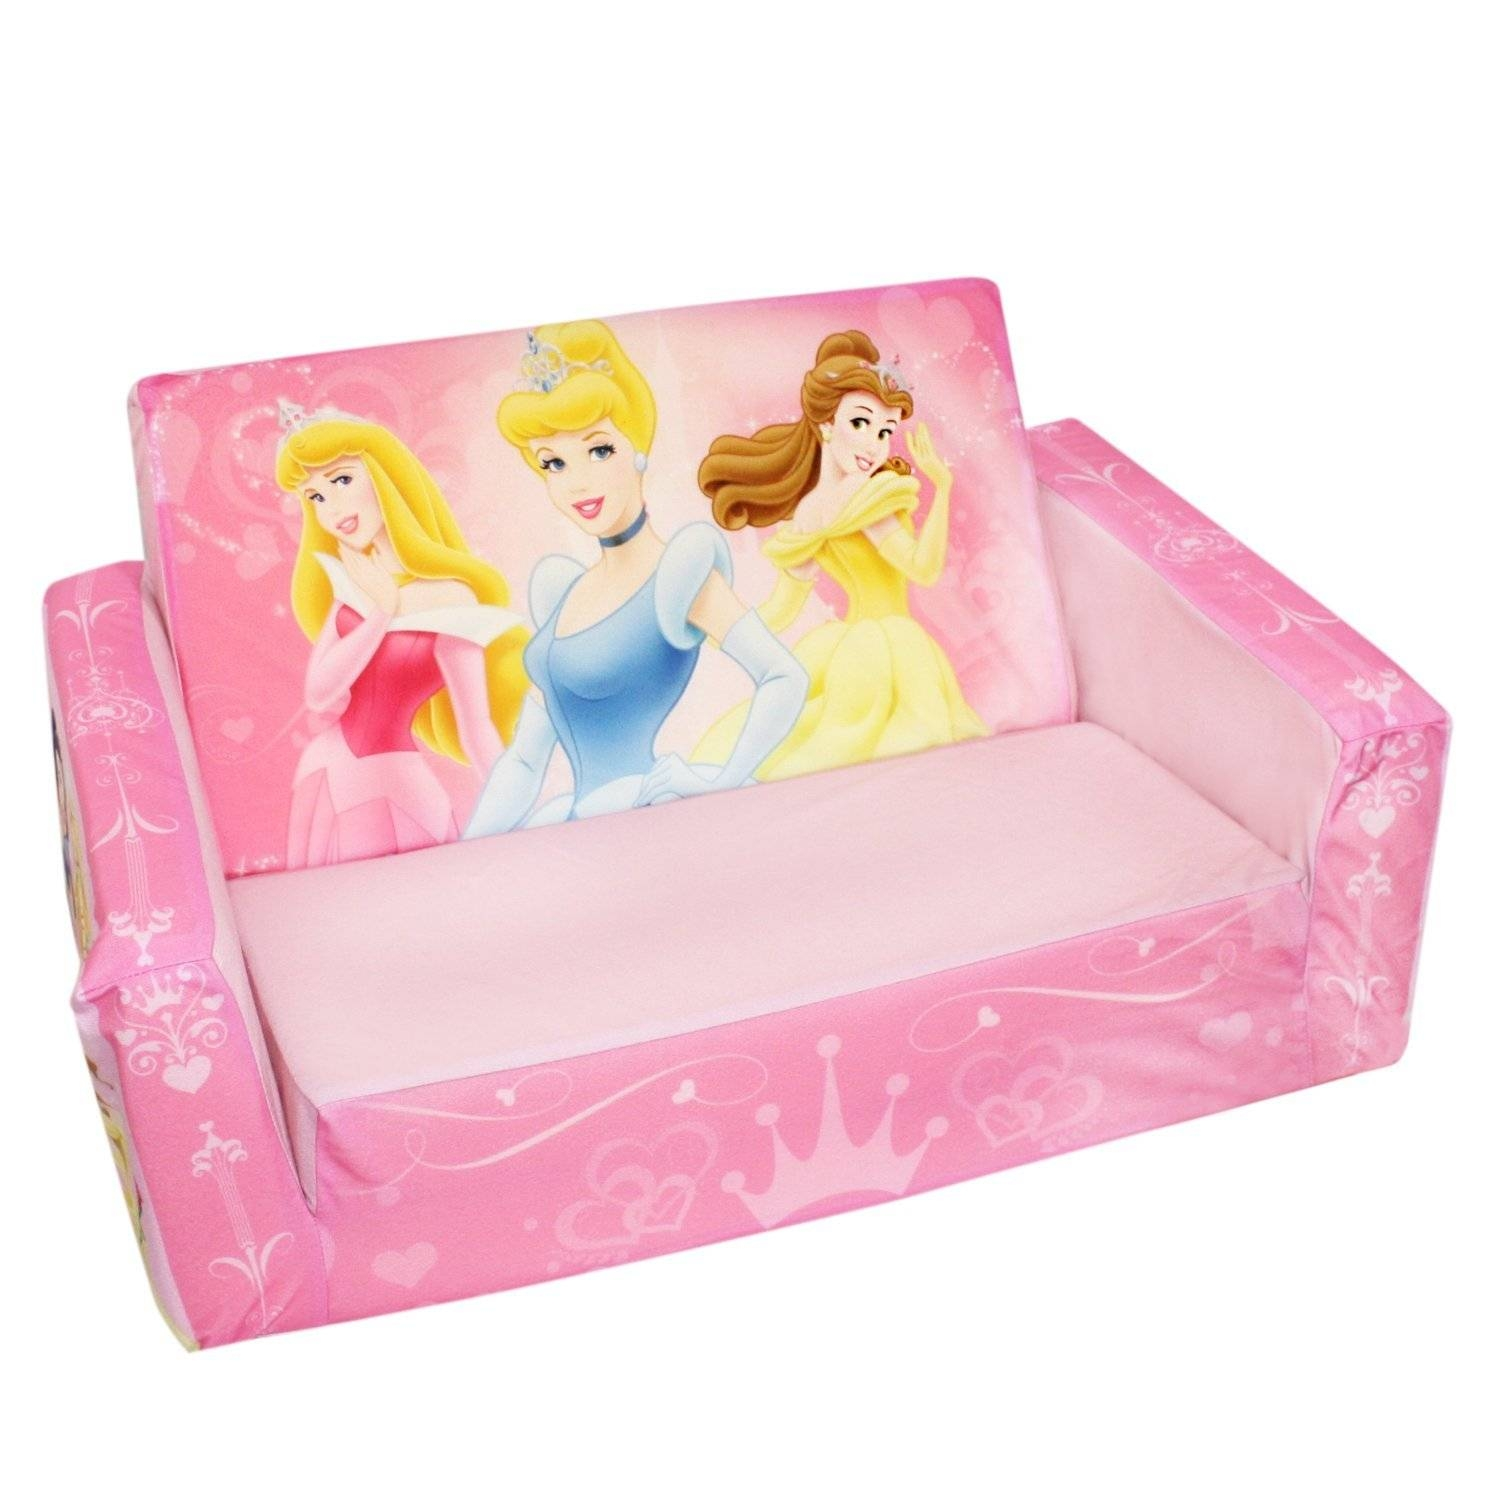 Disney Princess Toddler Couch Bed : Toddler Couch Bed, Charming throughout Disney Princess Sofas (Image 6 of 15)